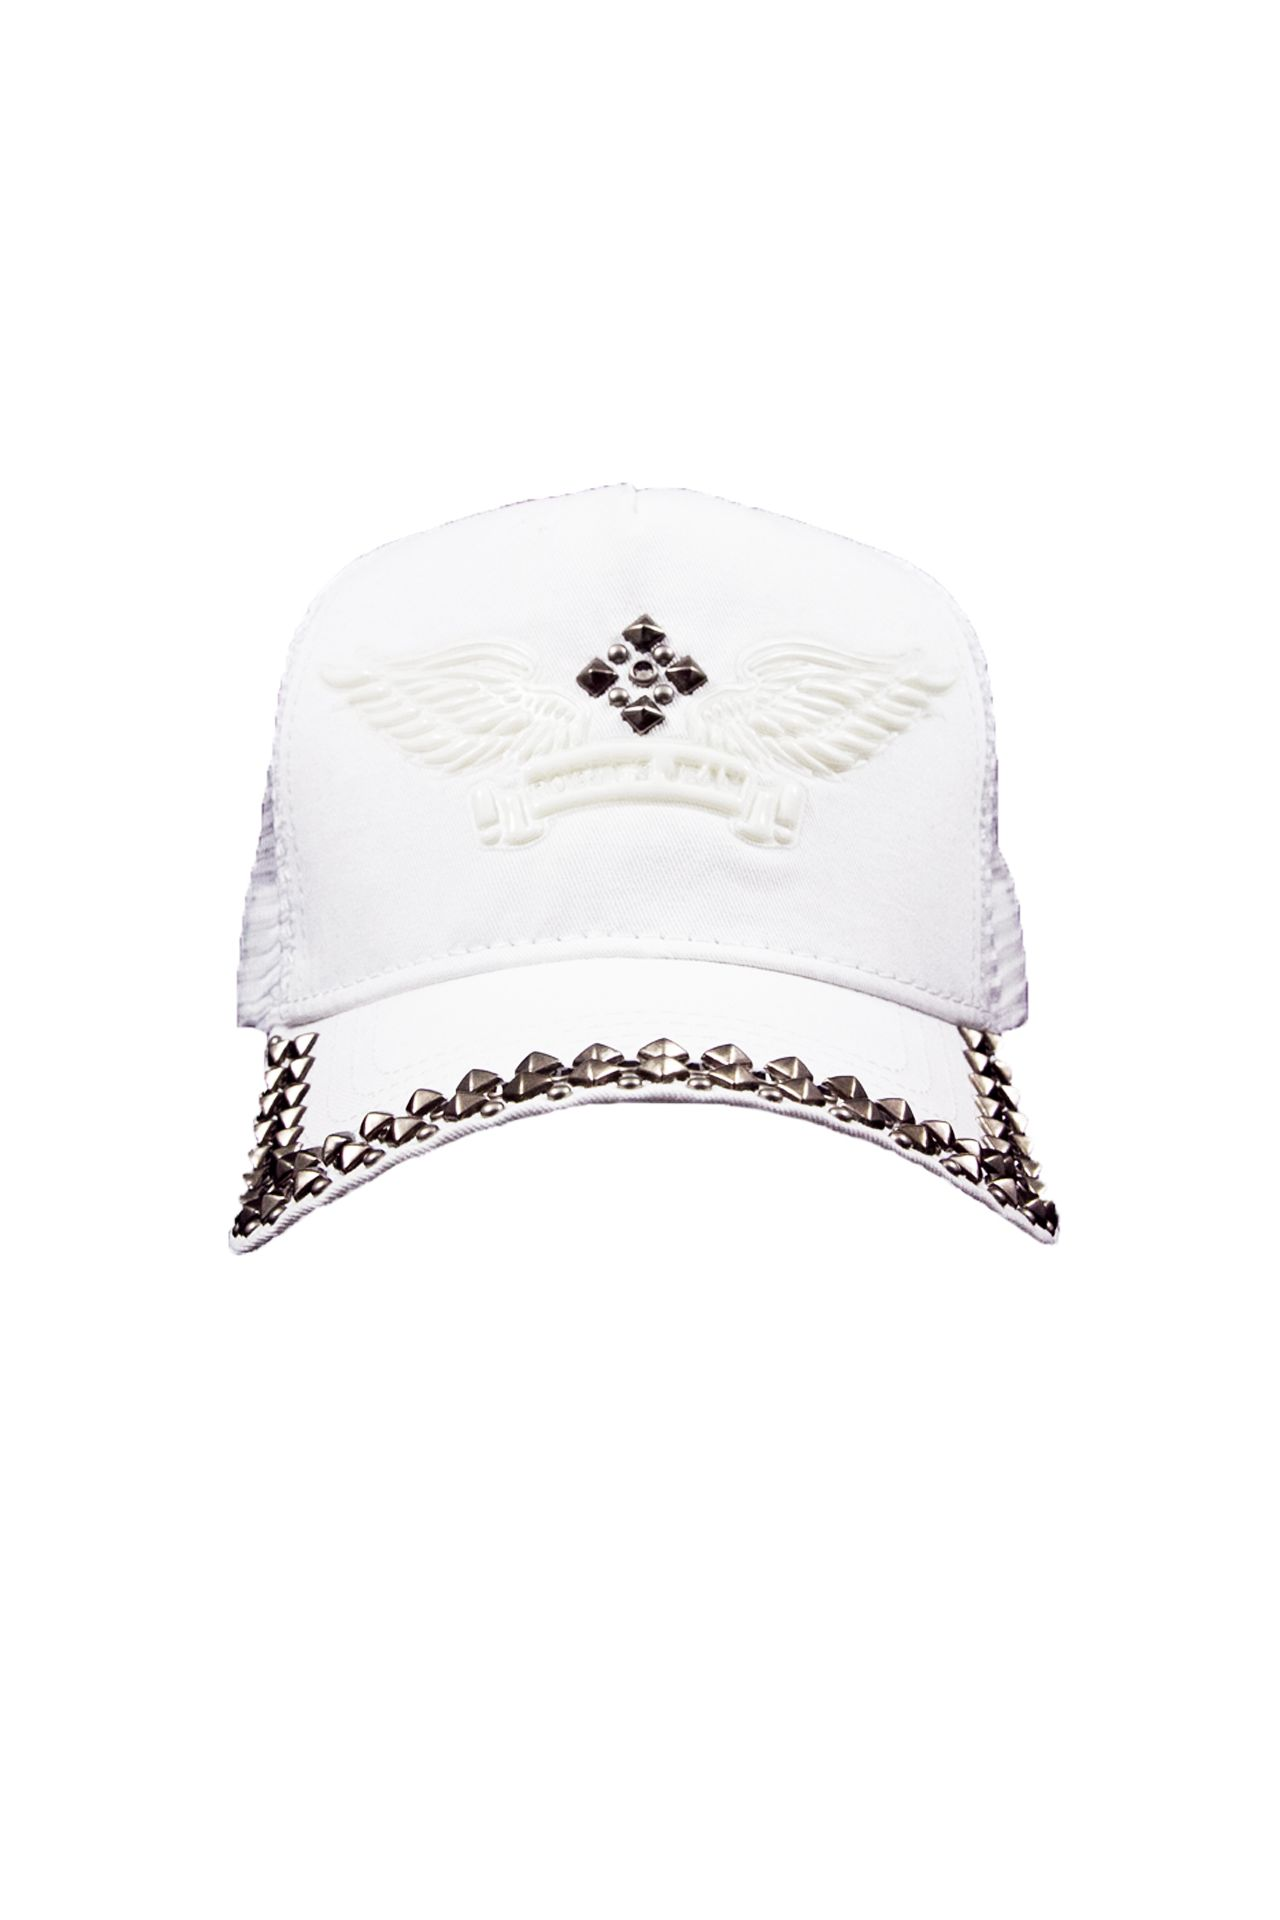 WHITE TWILL CAP 3D STUDDED